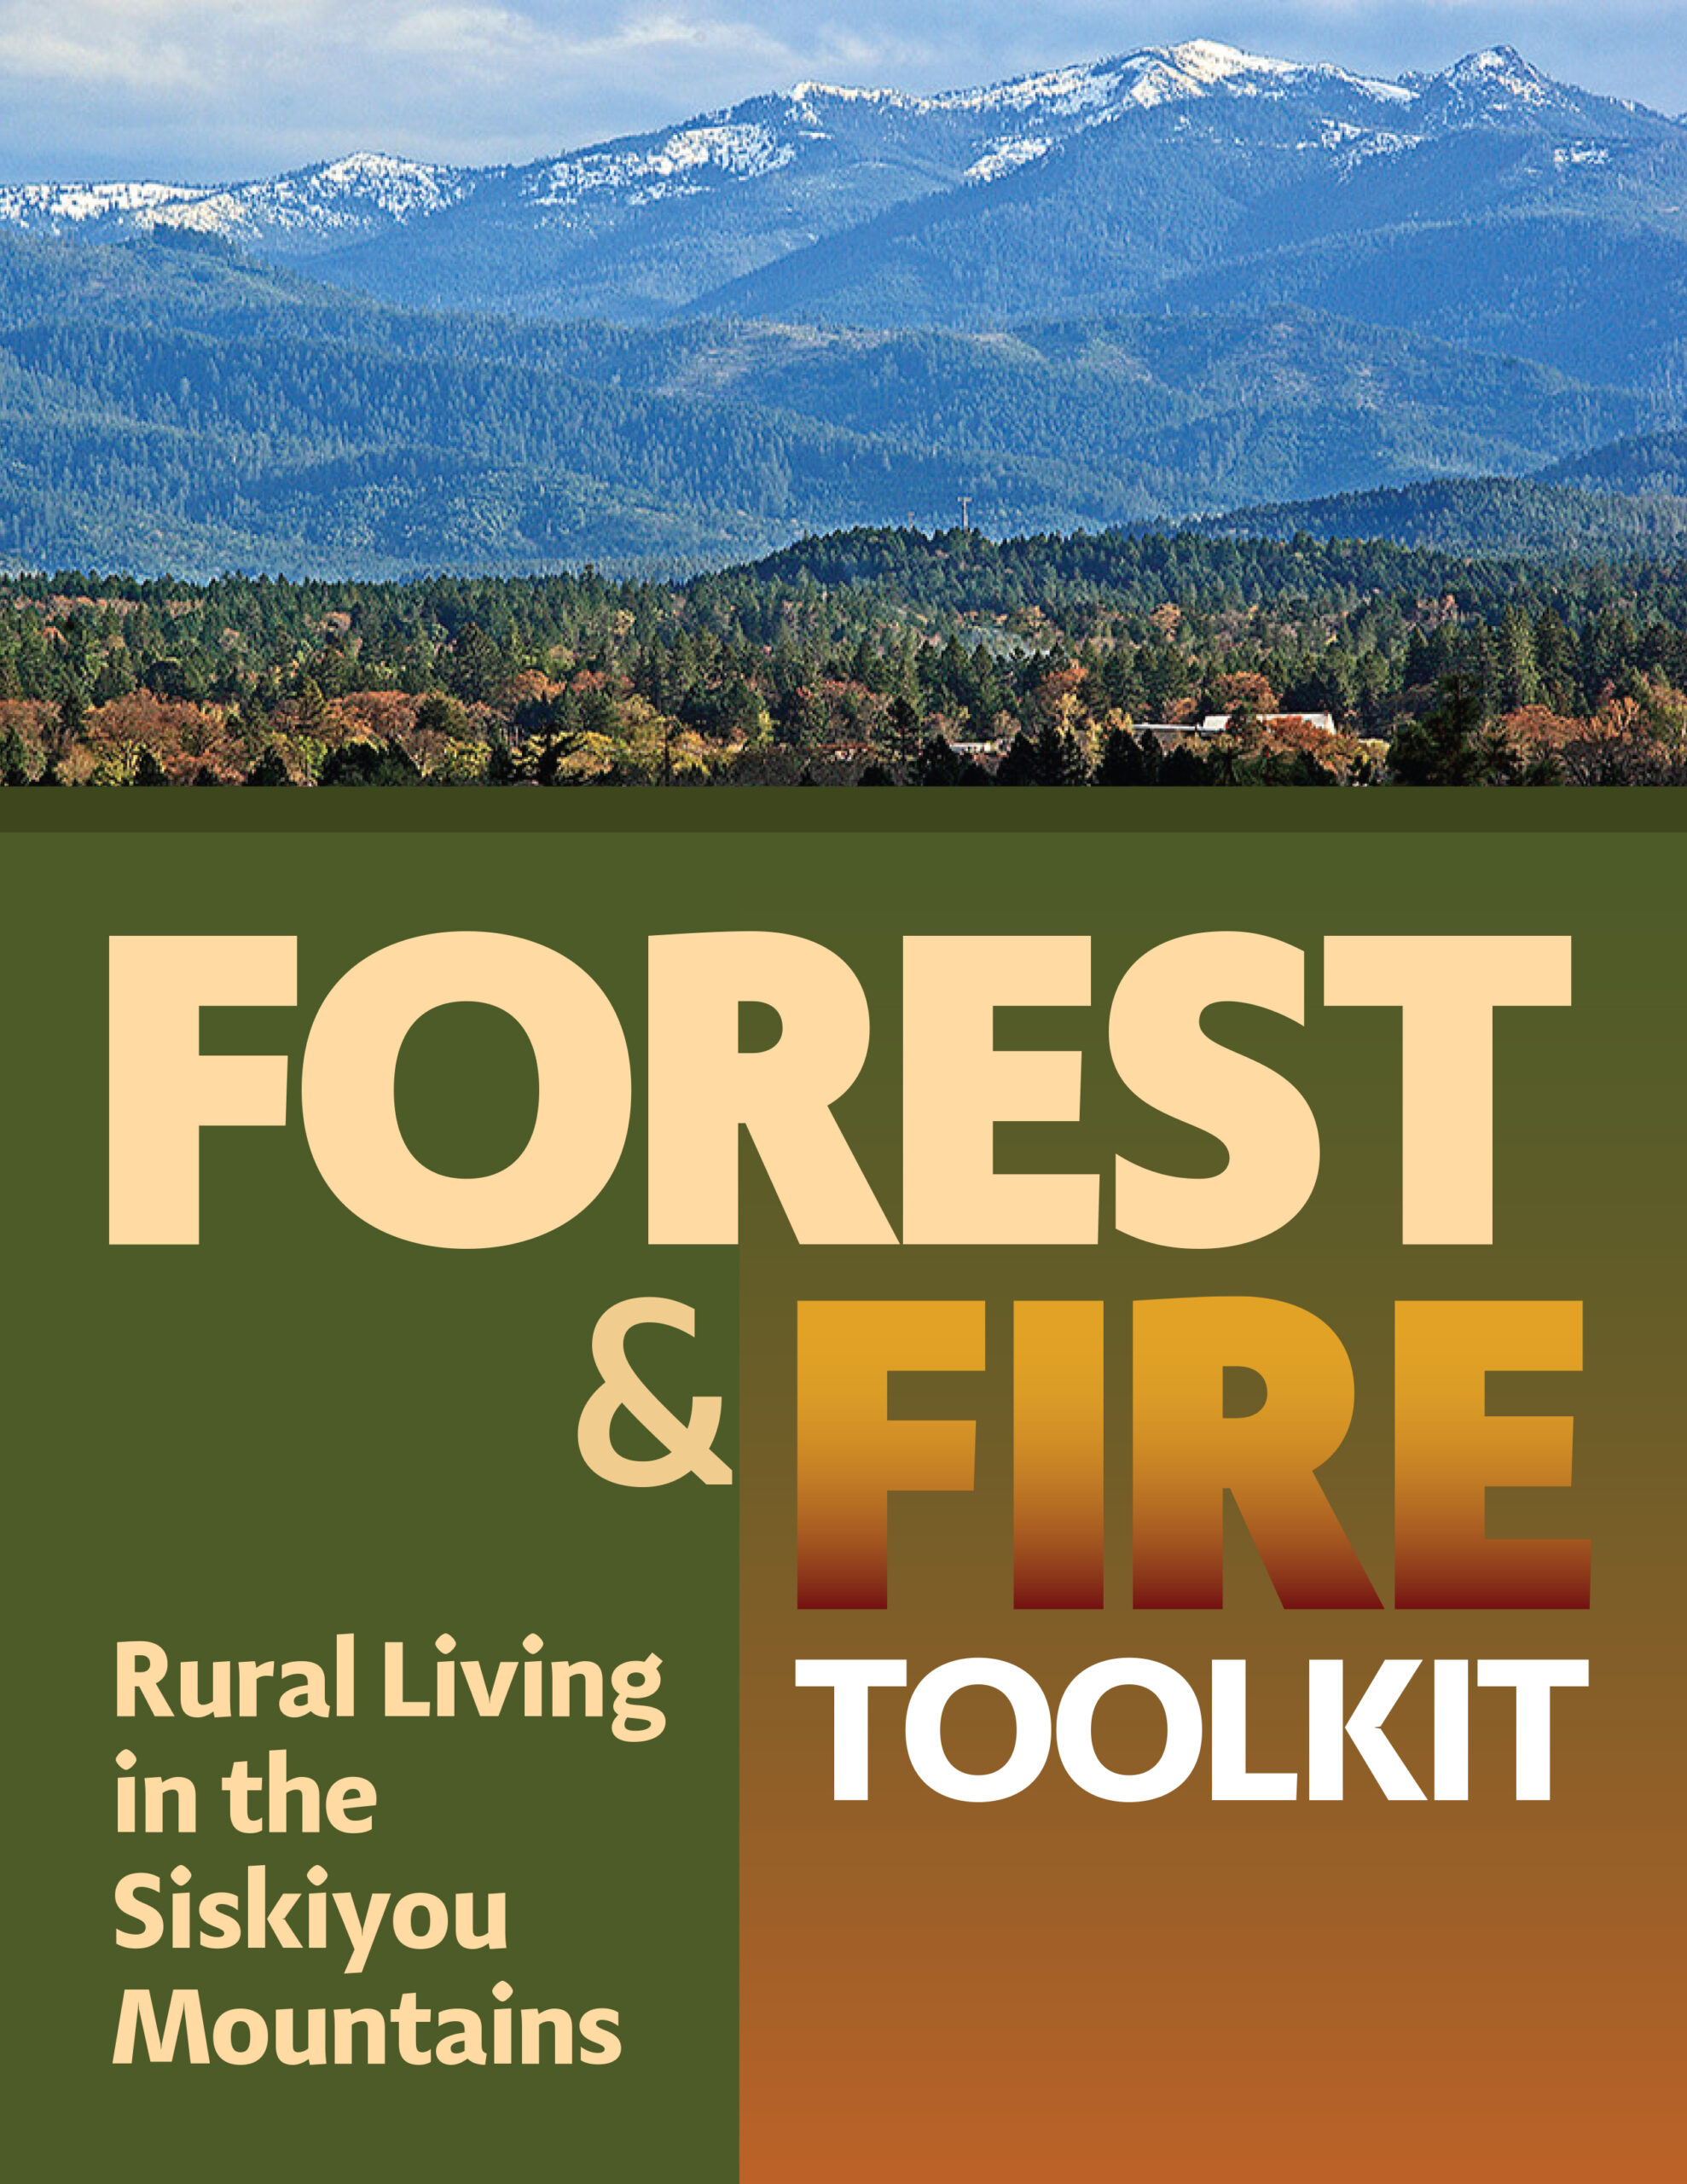 Download the new KS-Wild & Partners Forest & Fire Toolkit